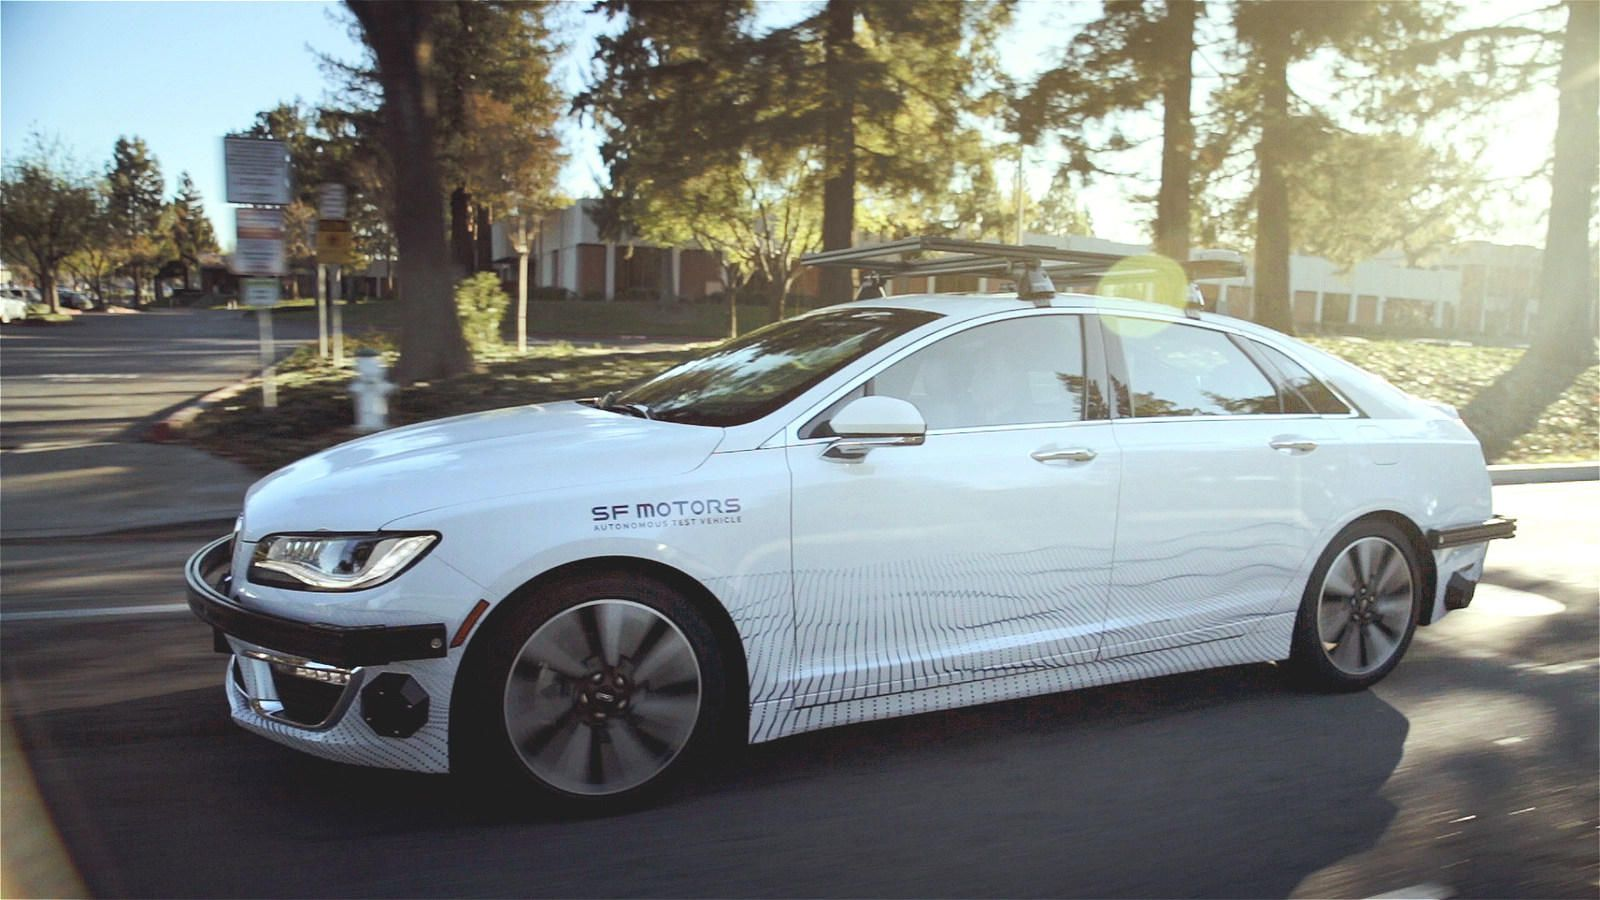 Sf Motors Unveils Advanced Intelligent Electric Vehicle Technology Working Of Cars That Brings Us To Today Is Now On The Cusp Taking Wraps Off Its Baby After Two Years Quietly Behind Scenes